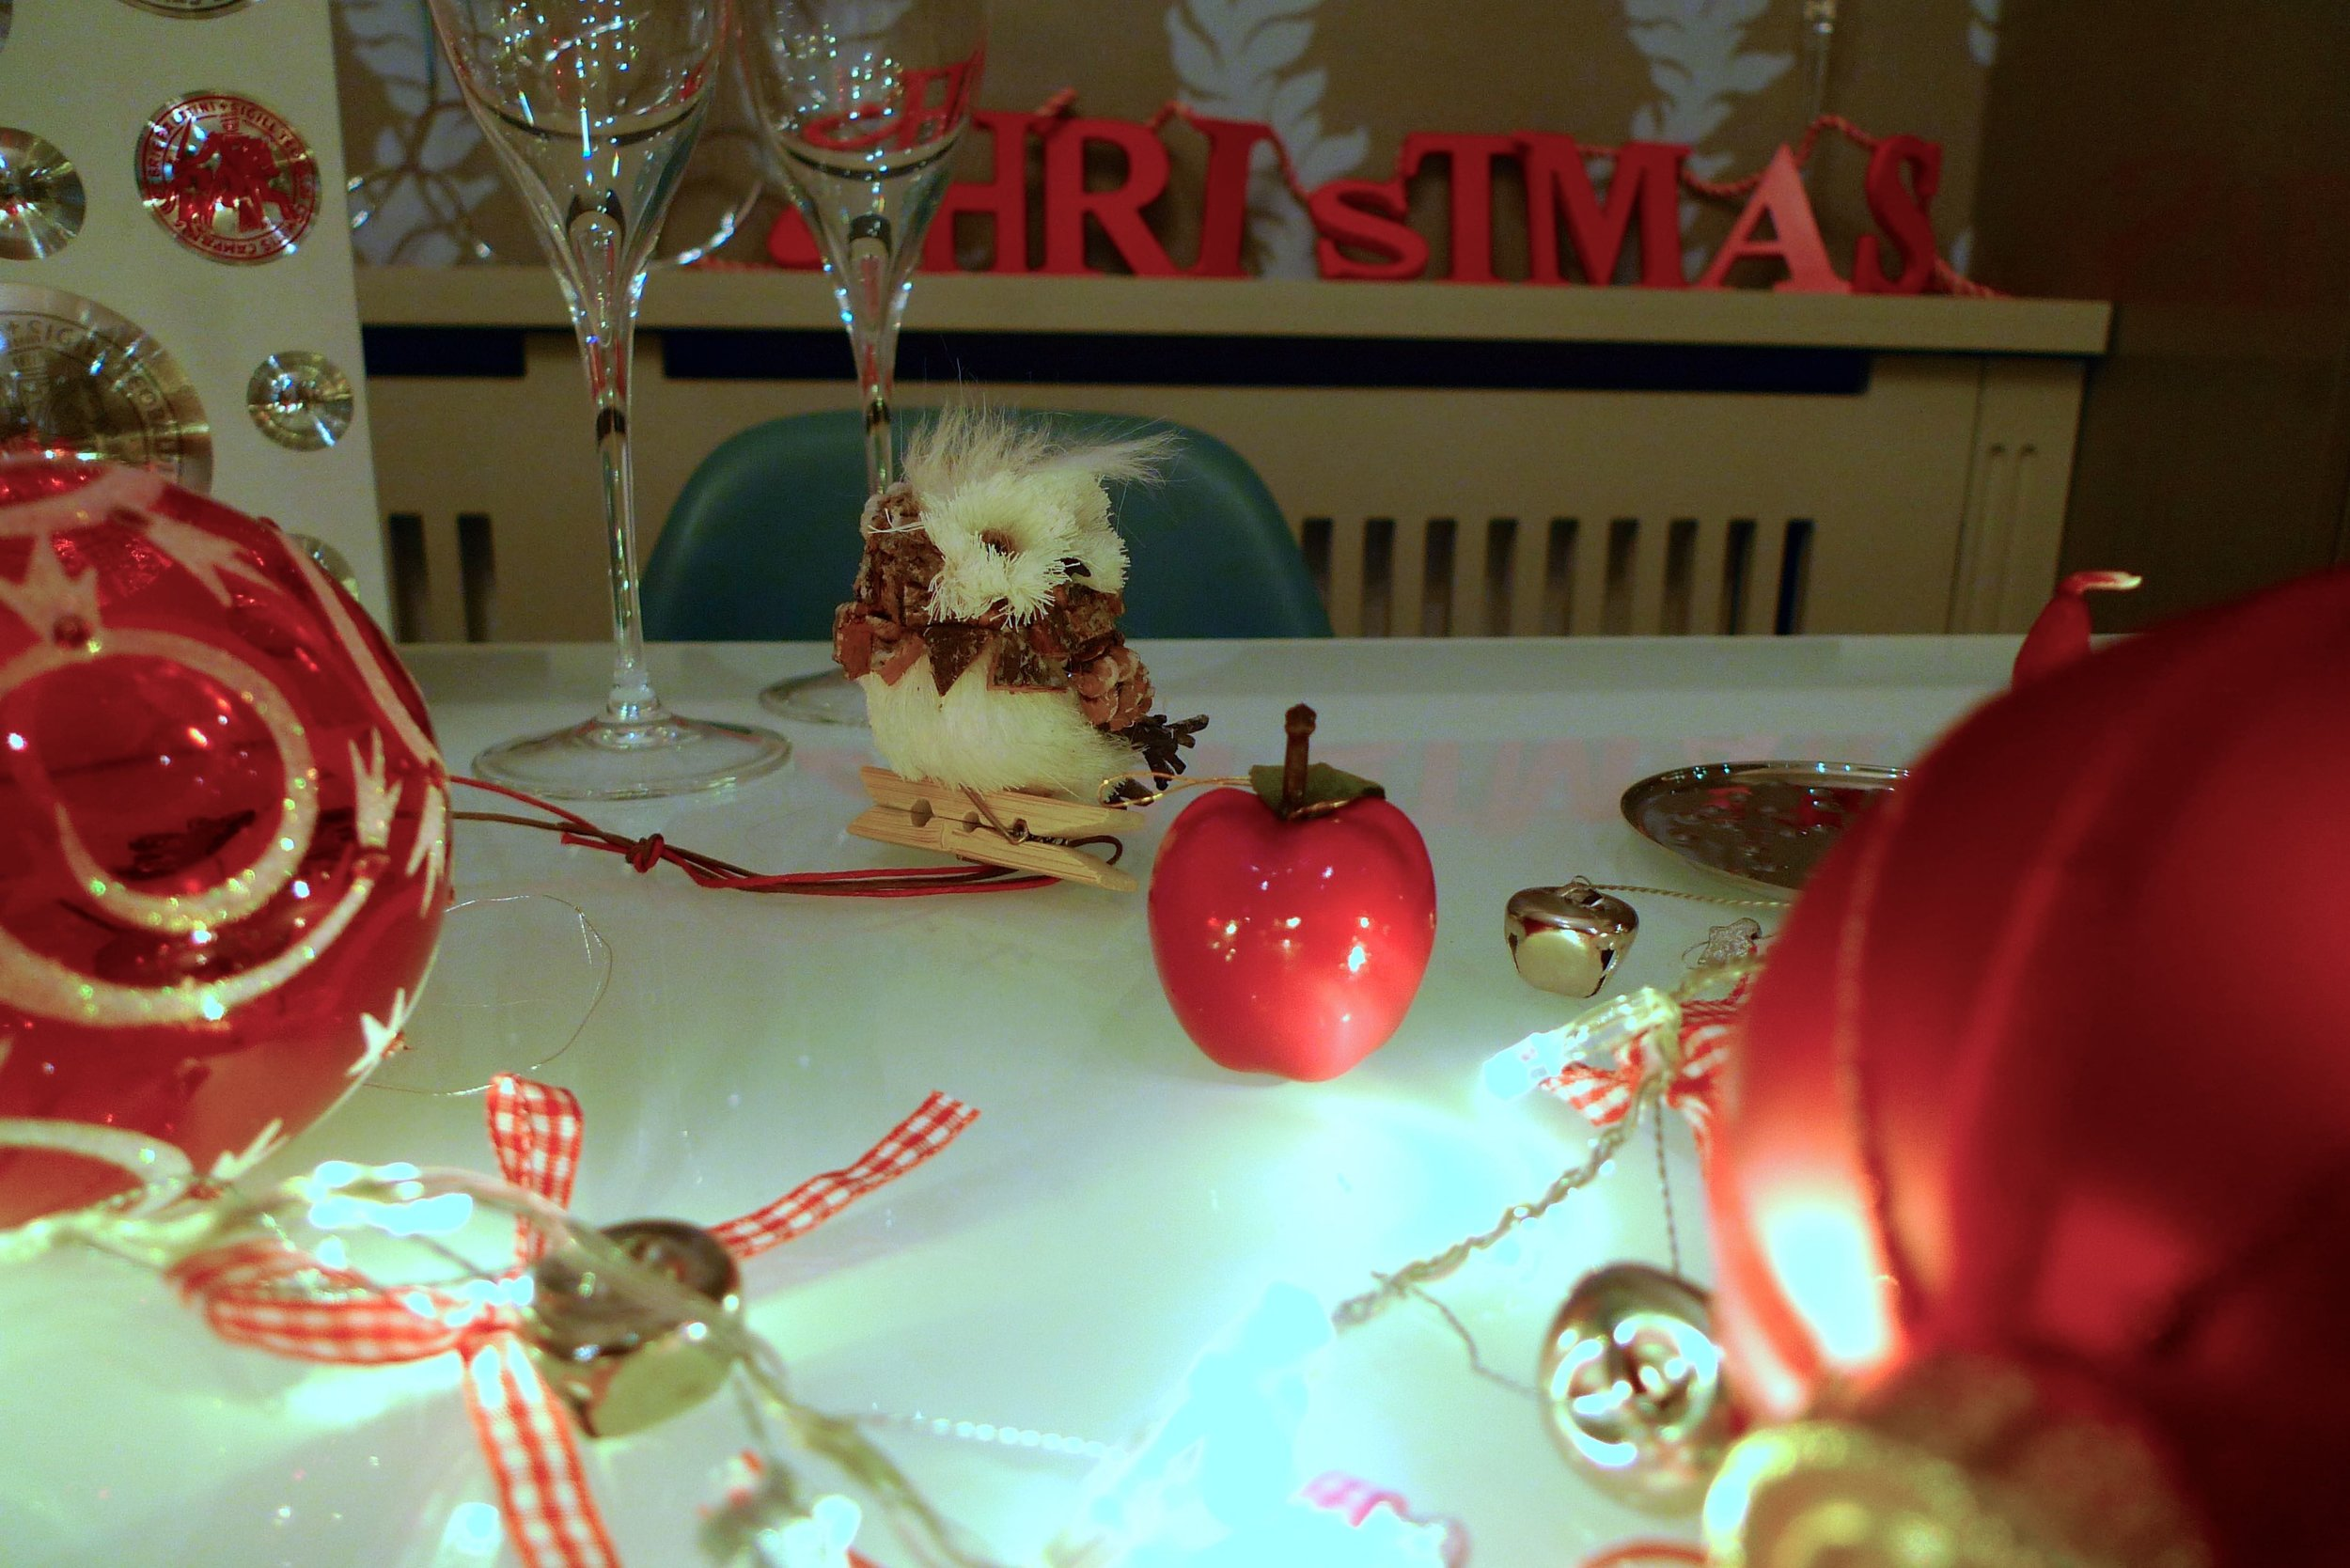 The cheery owl from TK Maxx - one of a pack of three - surveys the decorations on the table